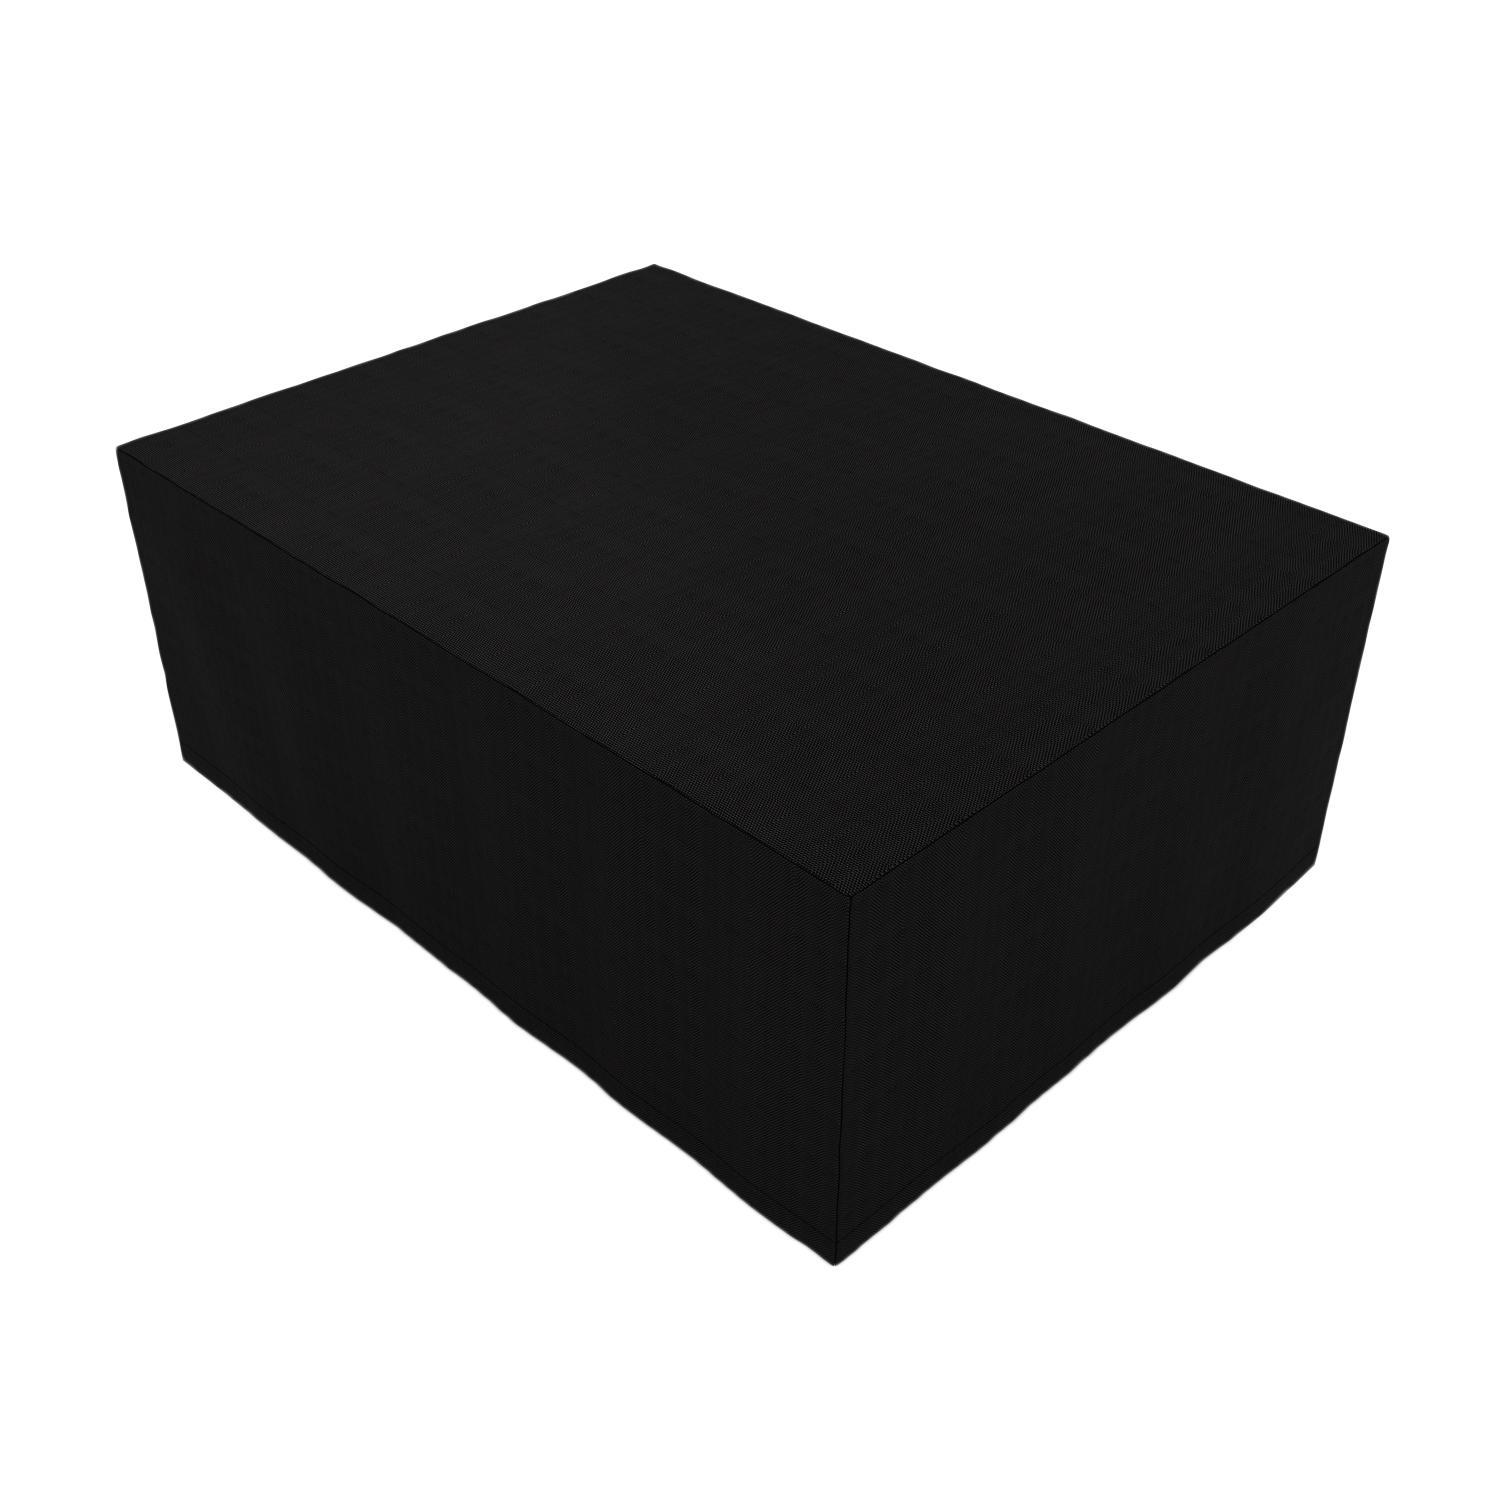 Rectangular Patio Table And Chair Cover Waterproof Outdoor Furniture